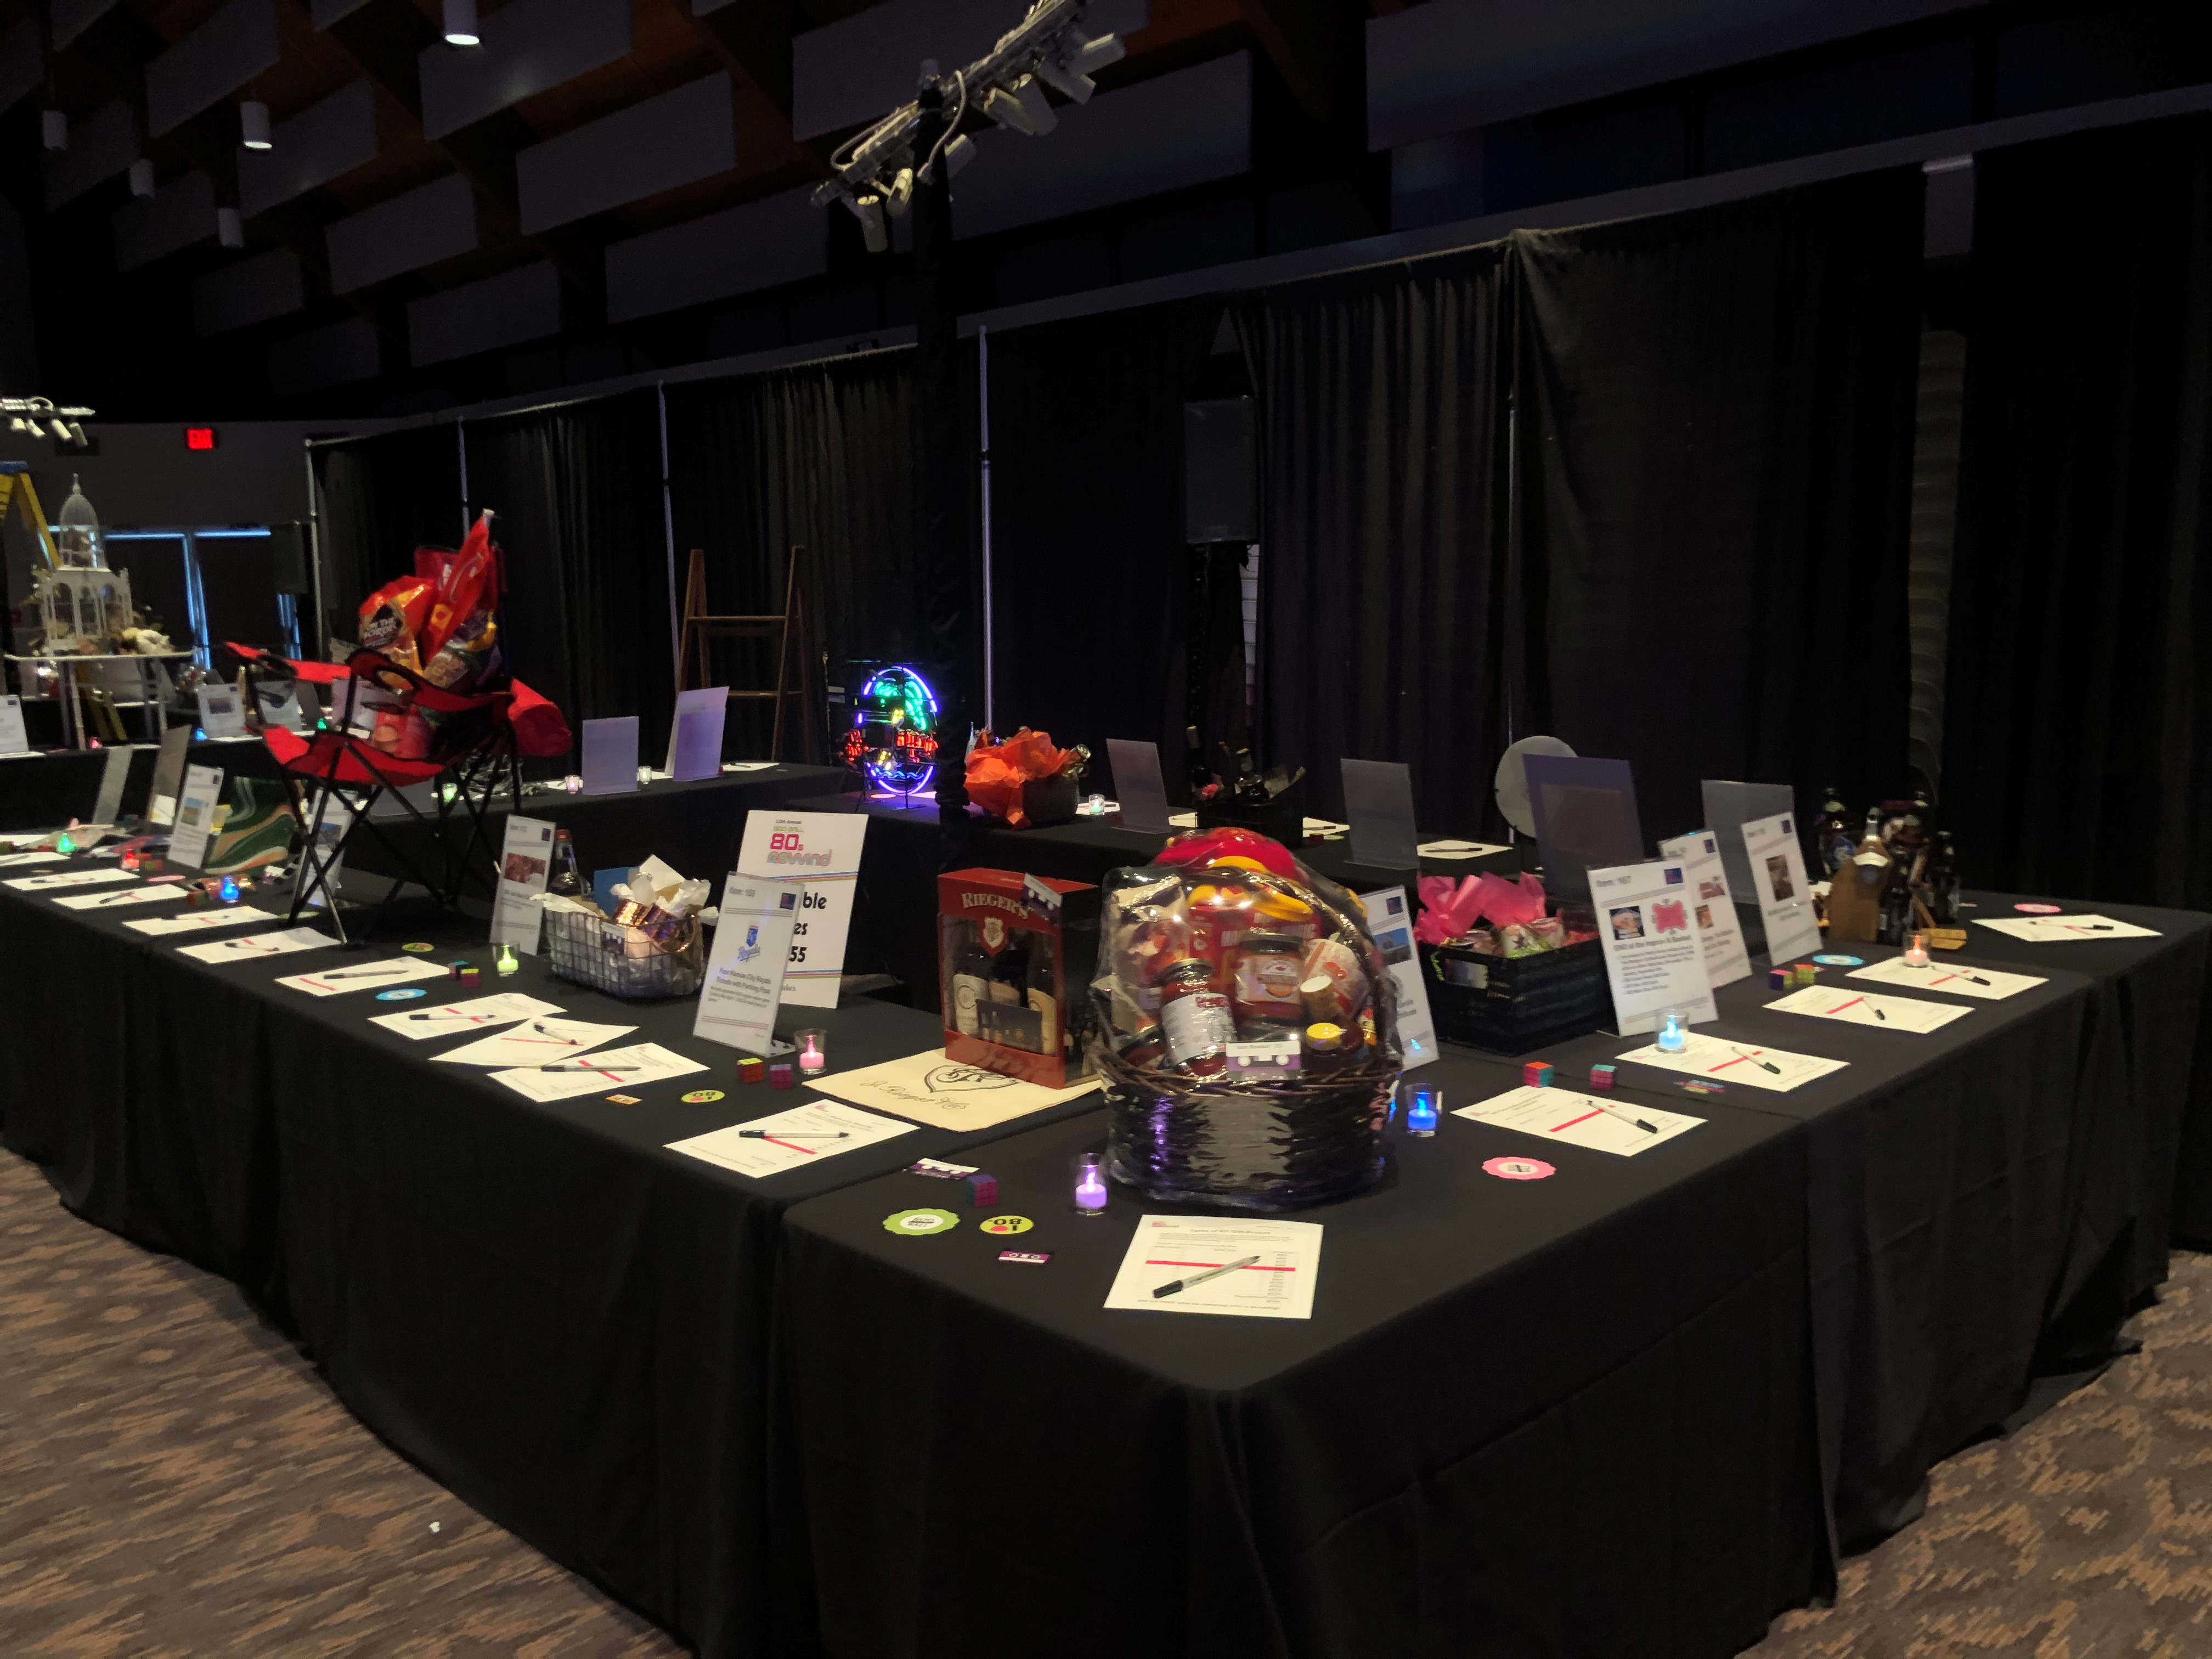 Silent auction items at Boo Ball